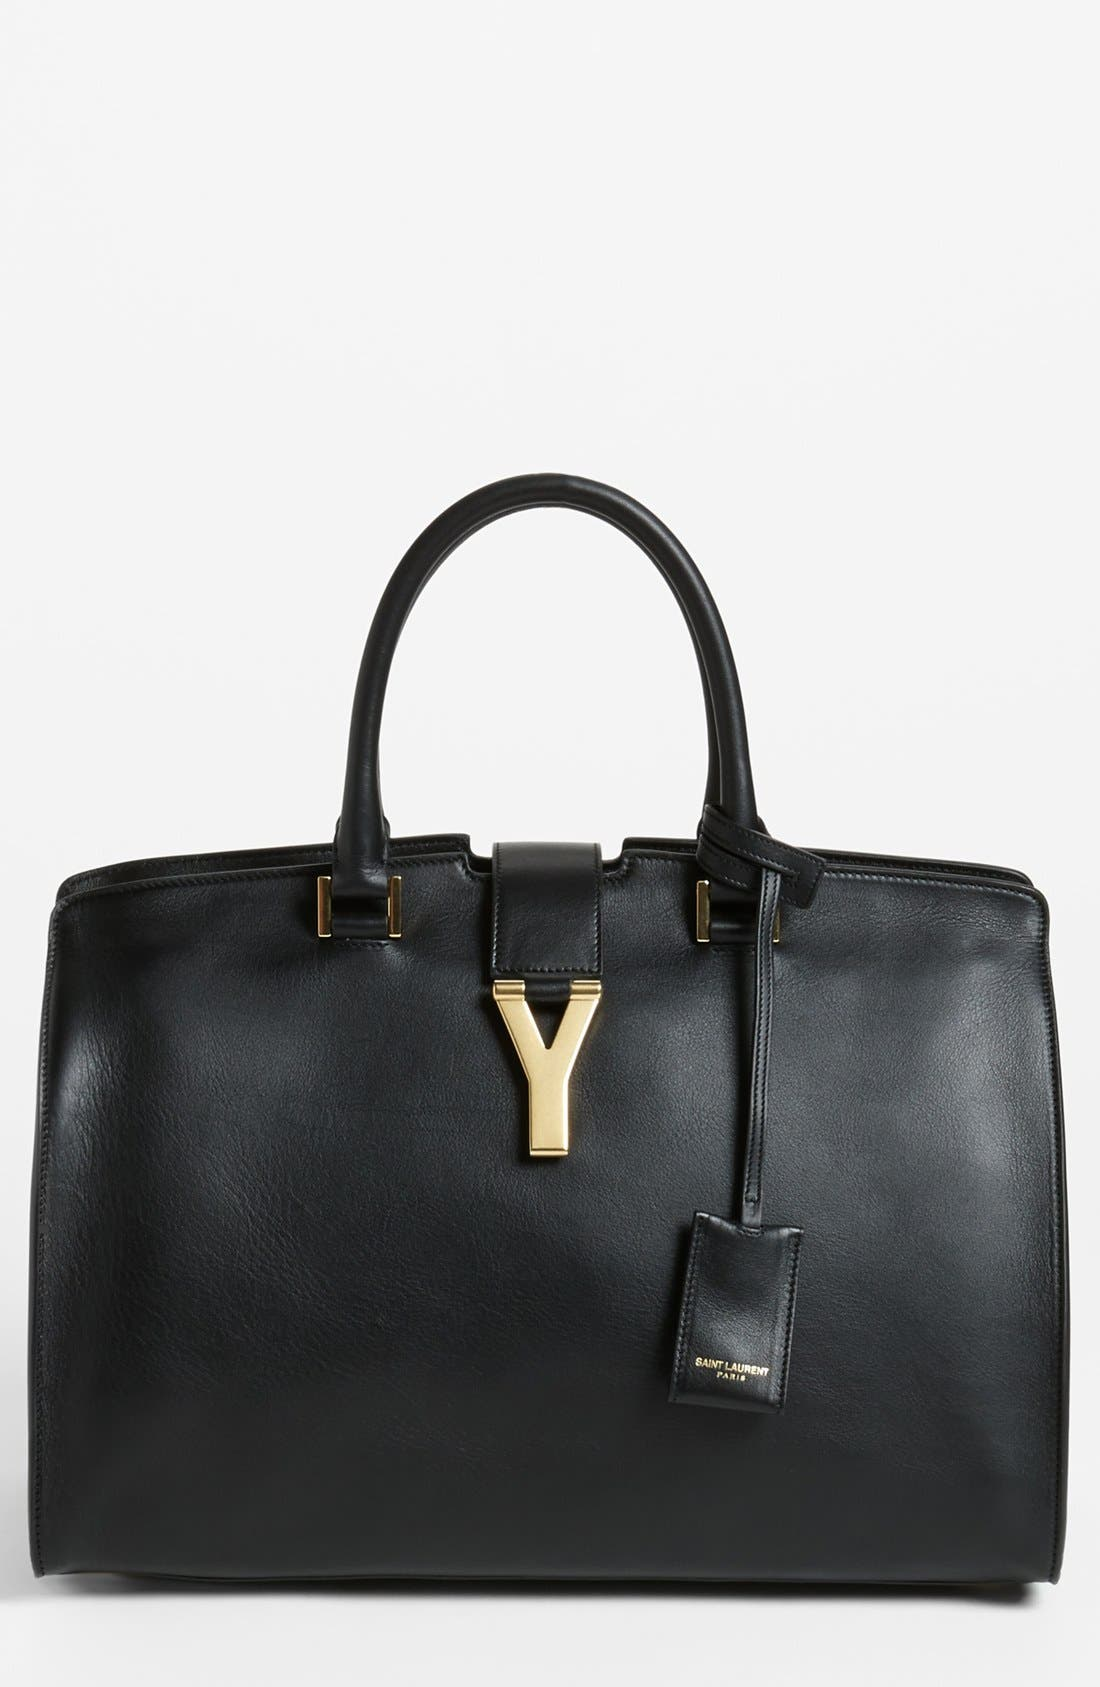 Main Image - Saint Laurent 'Ligne Y' Leather Satchel